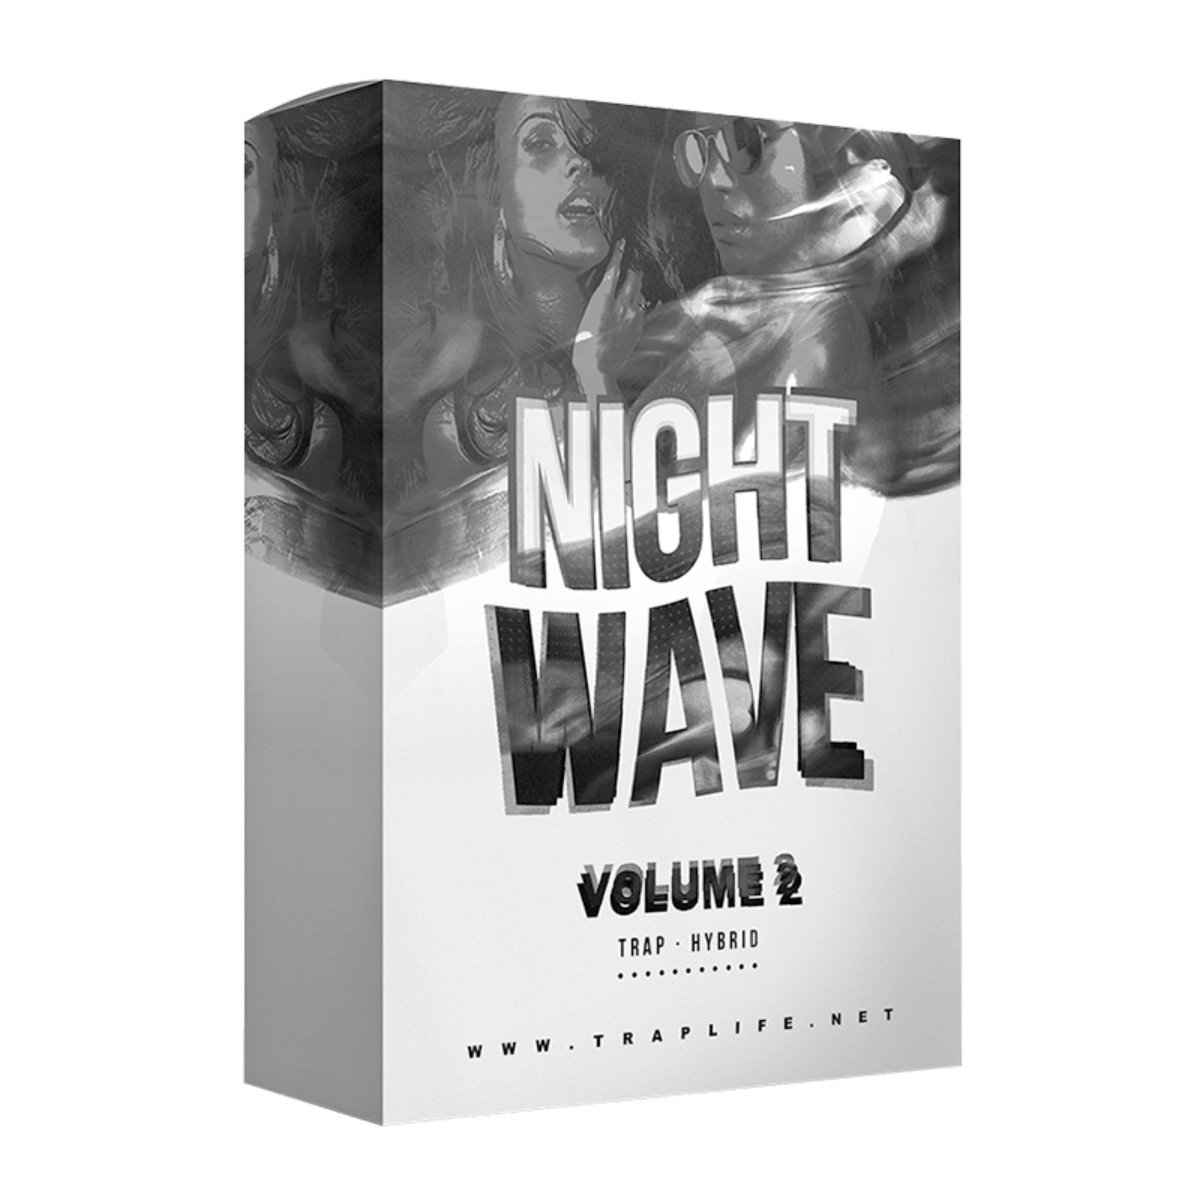 Nightwave Vol 2